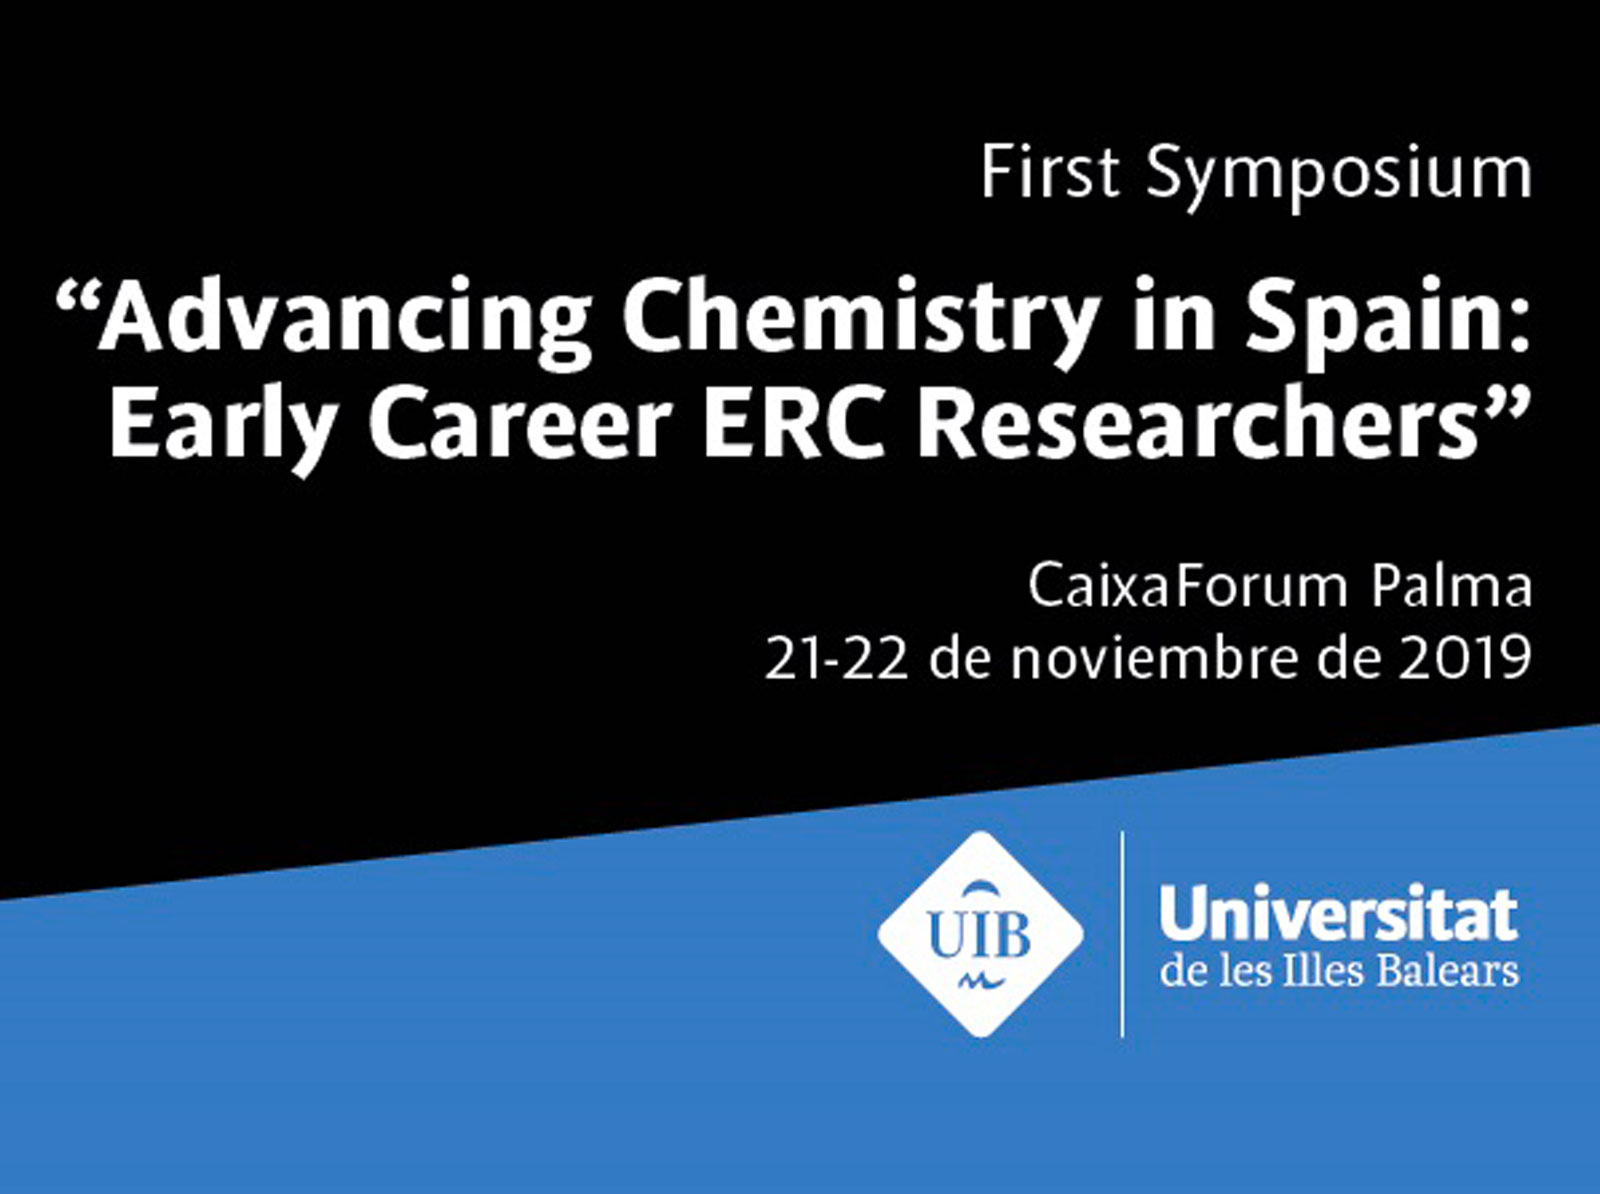 Simposio Advancing Chemistry in Spain